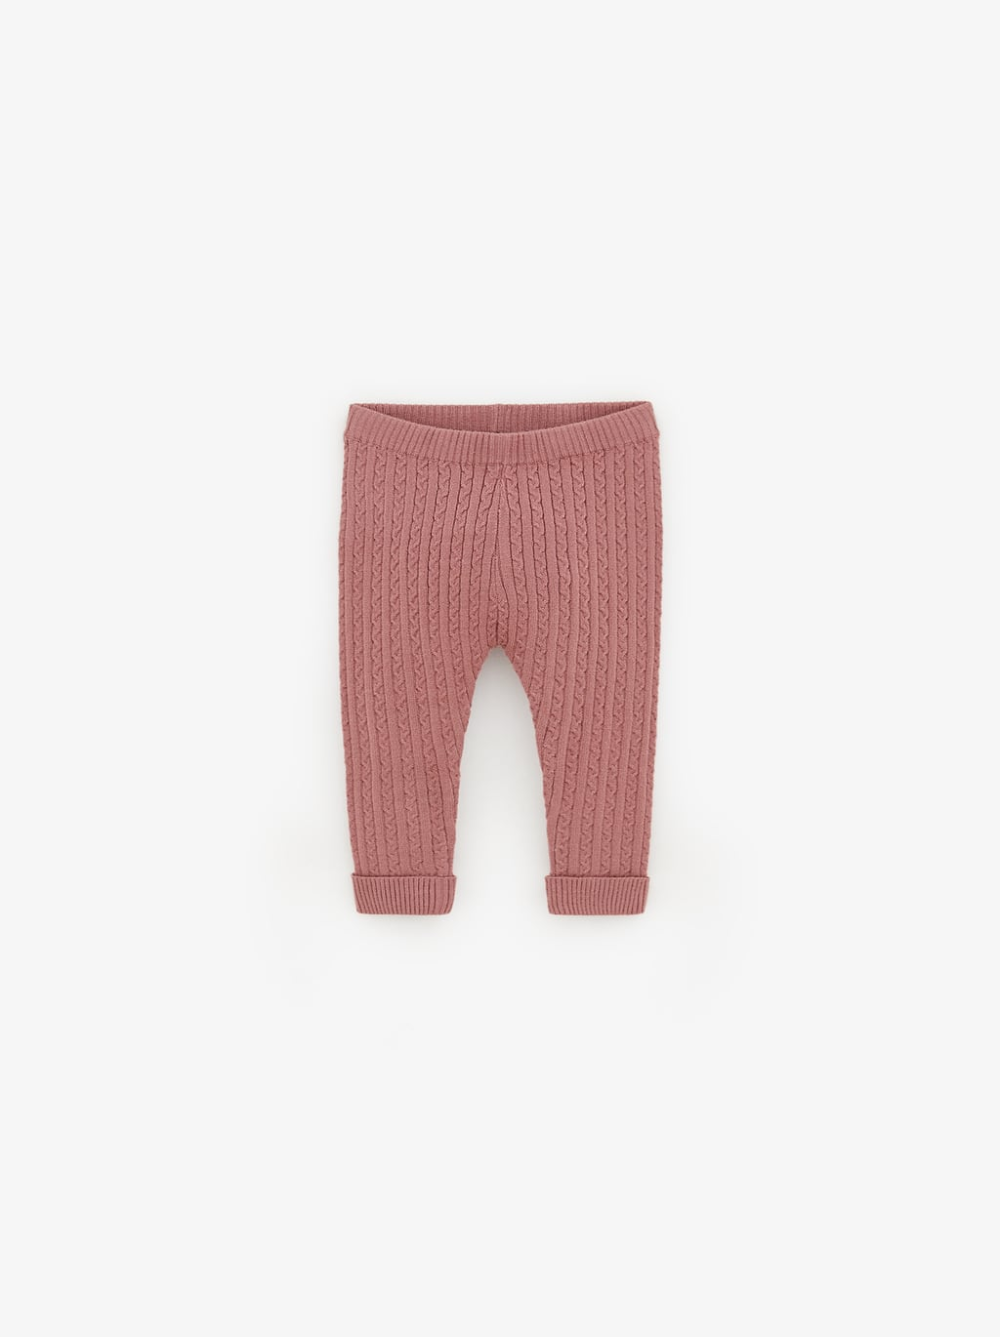 Cable Knit Leggings Knit Leggings Cable Knit Leggings Are Not Pants